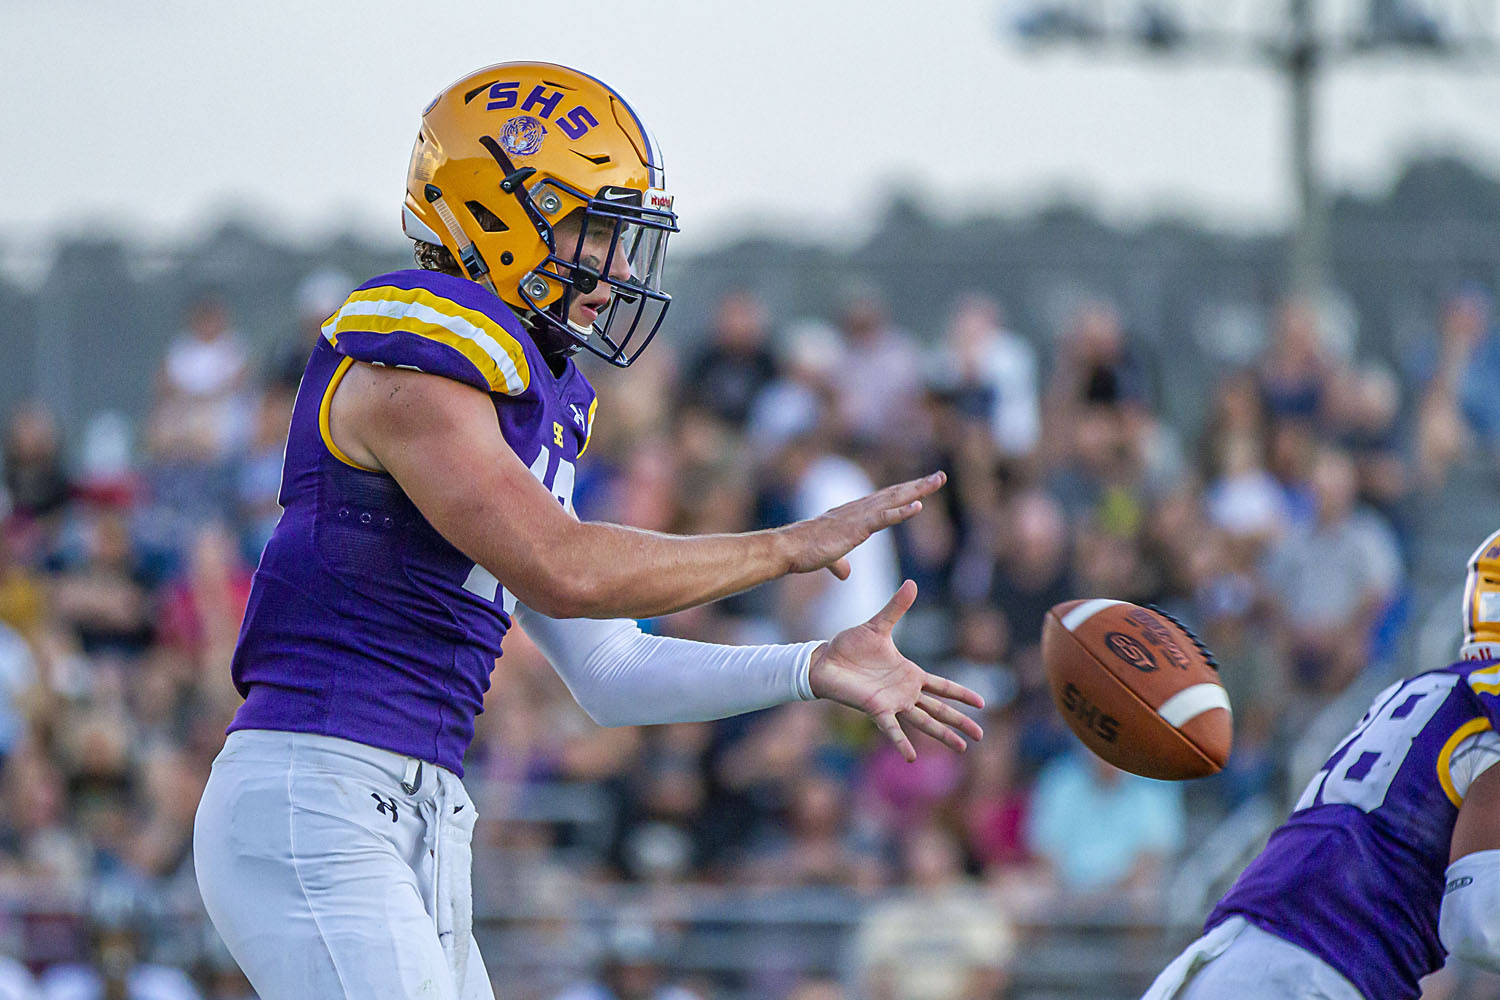 Springville returns to region play with hopes of clinching culture-changing victory